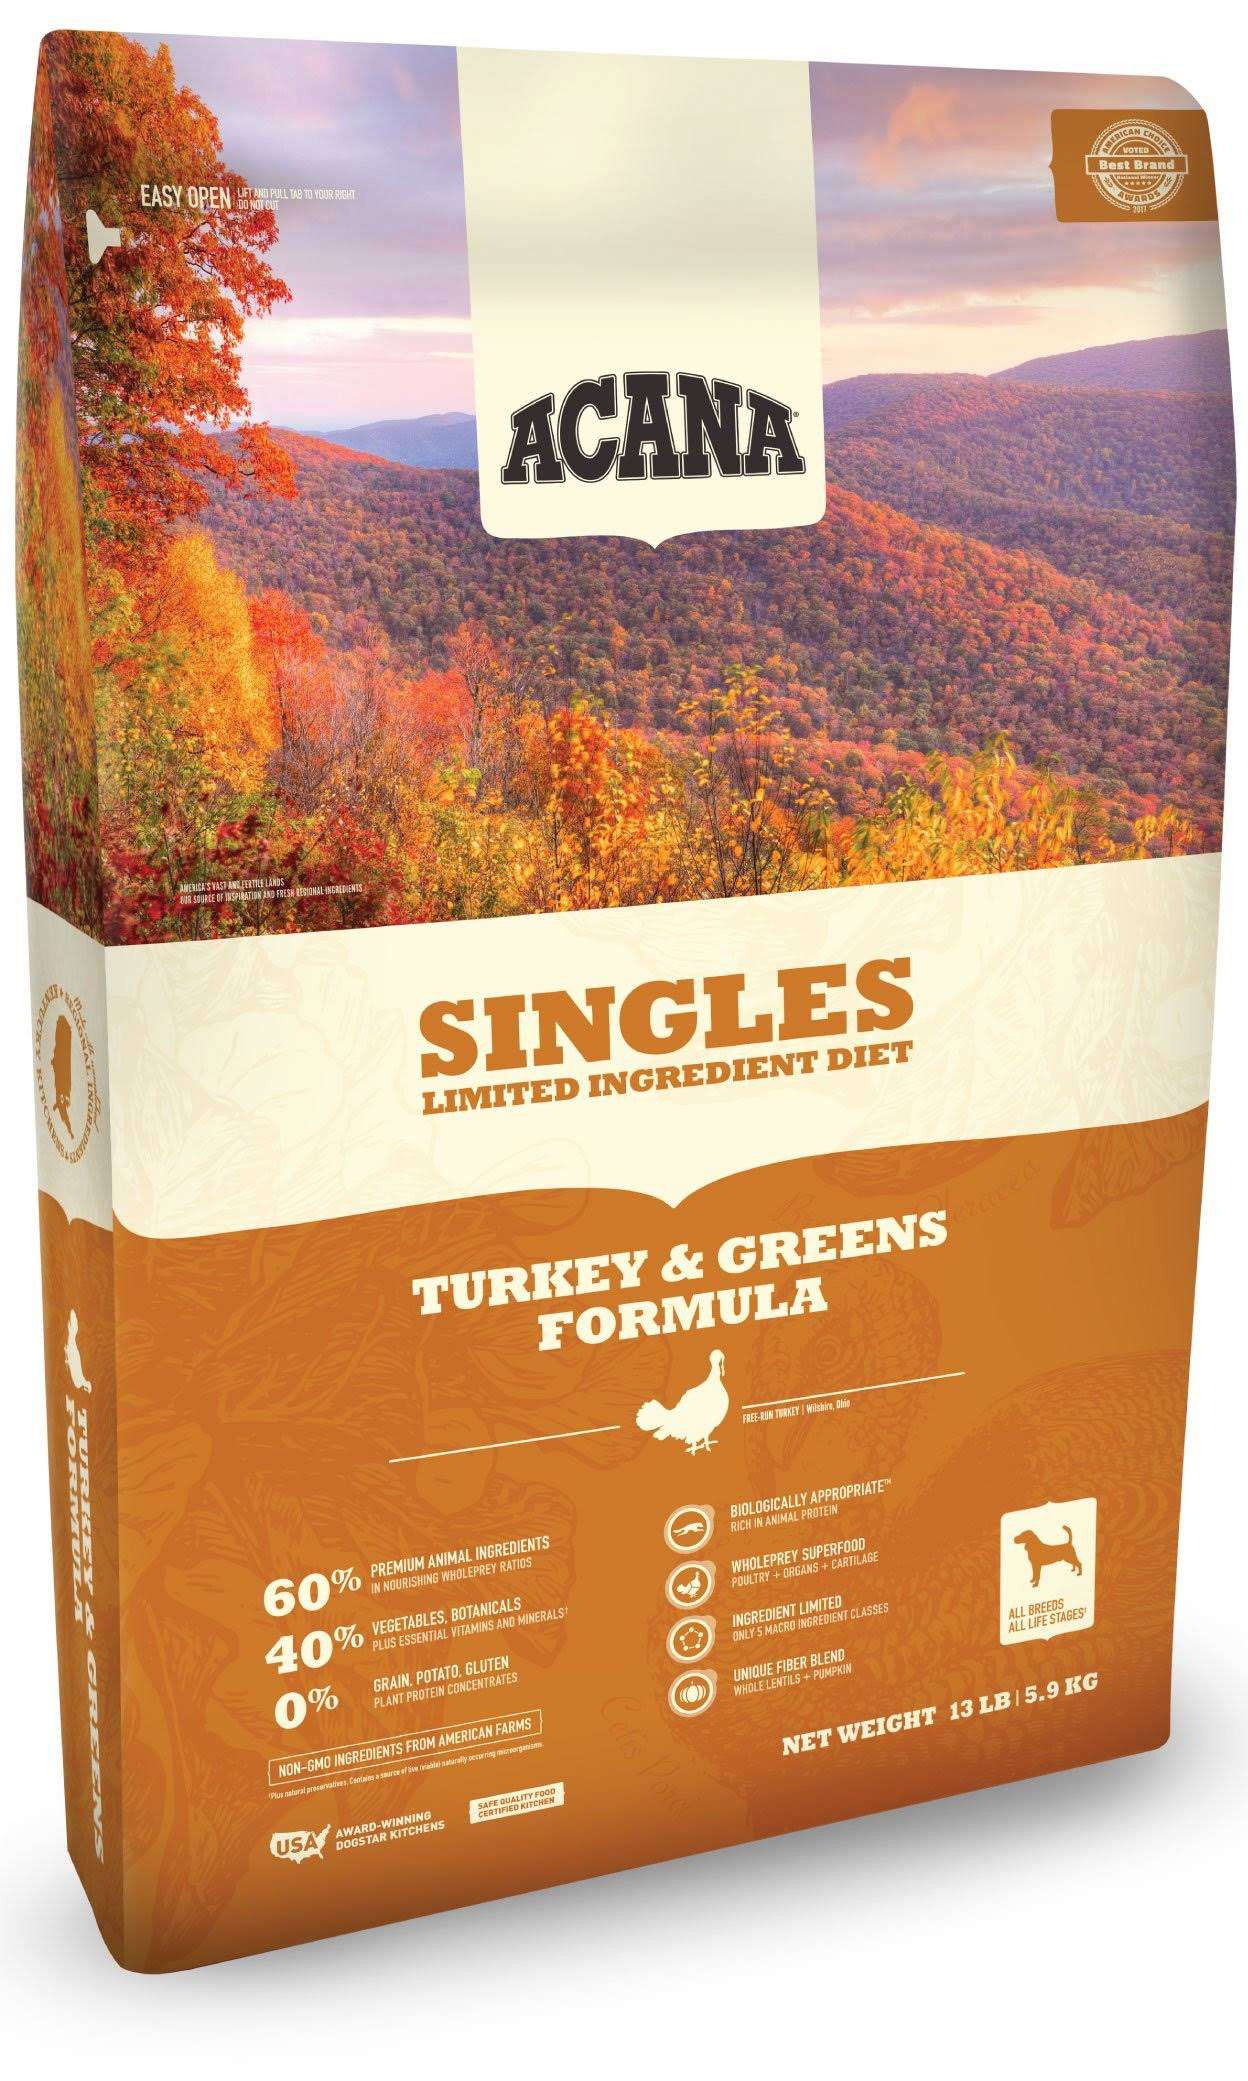 ACANA Singles Turkey & Greens Dry Dog Food 13 lbs